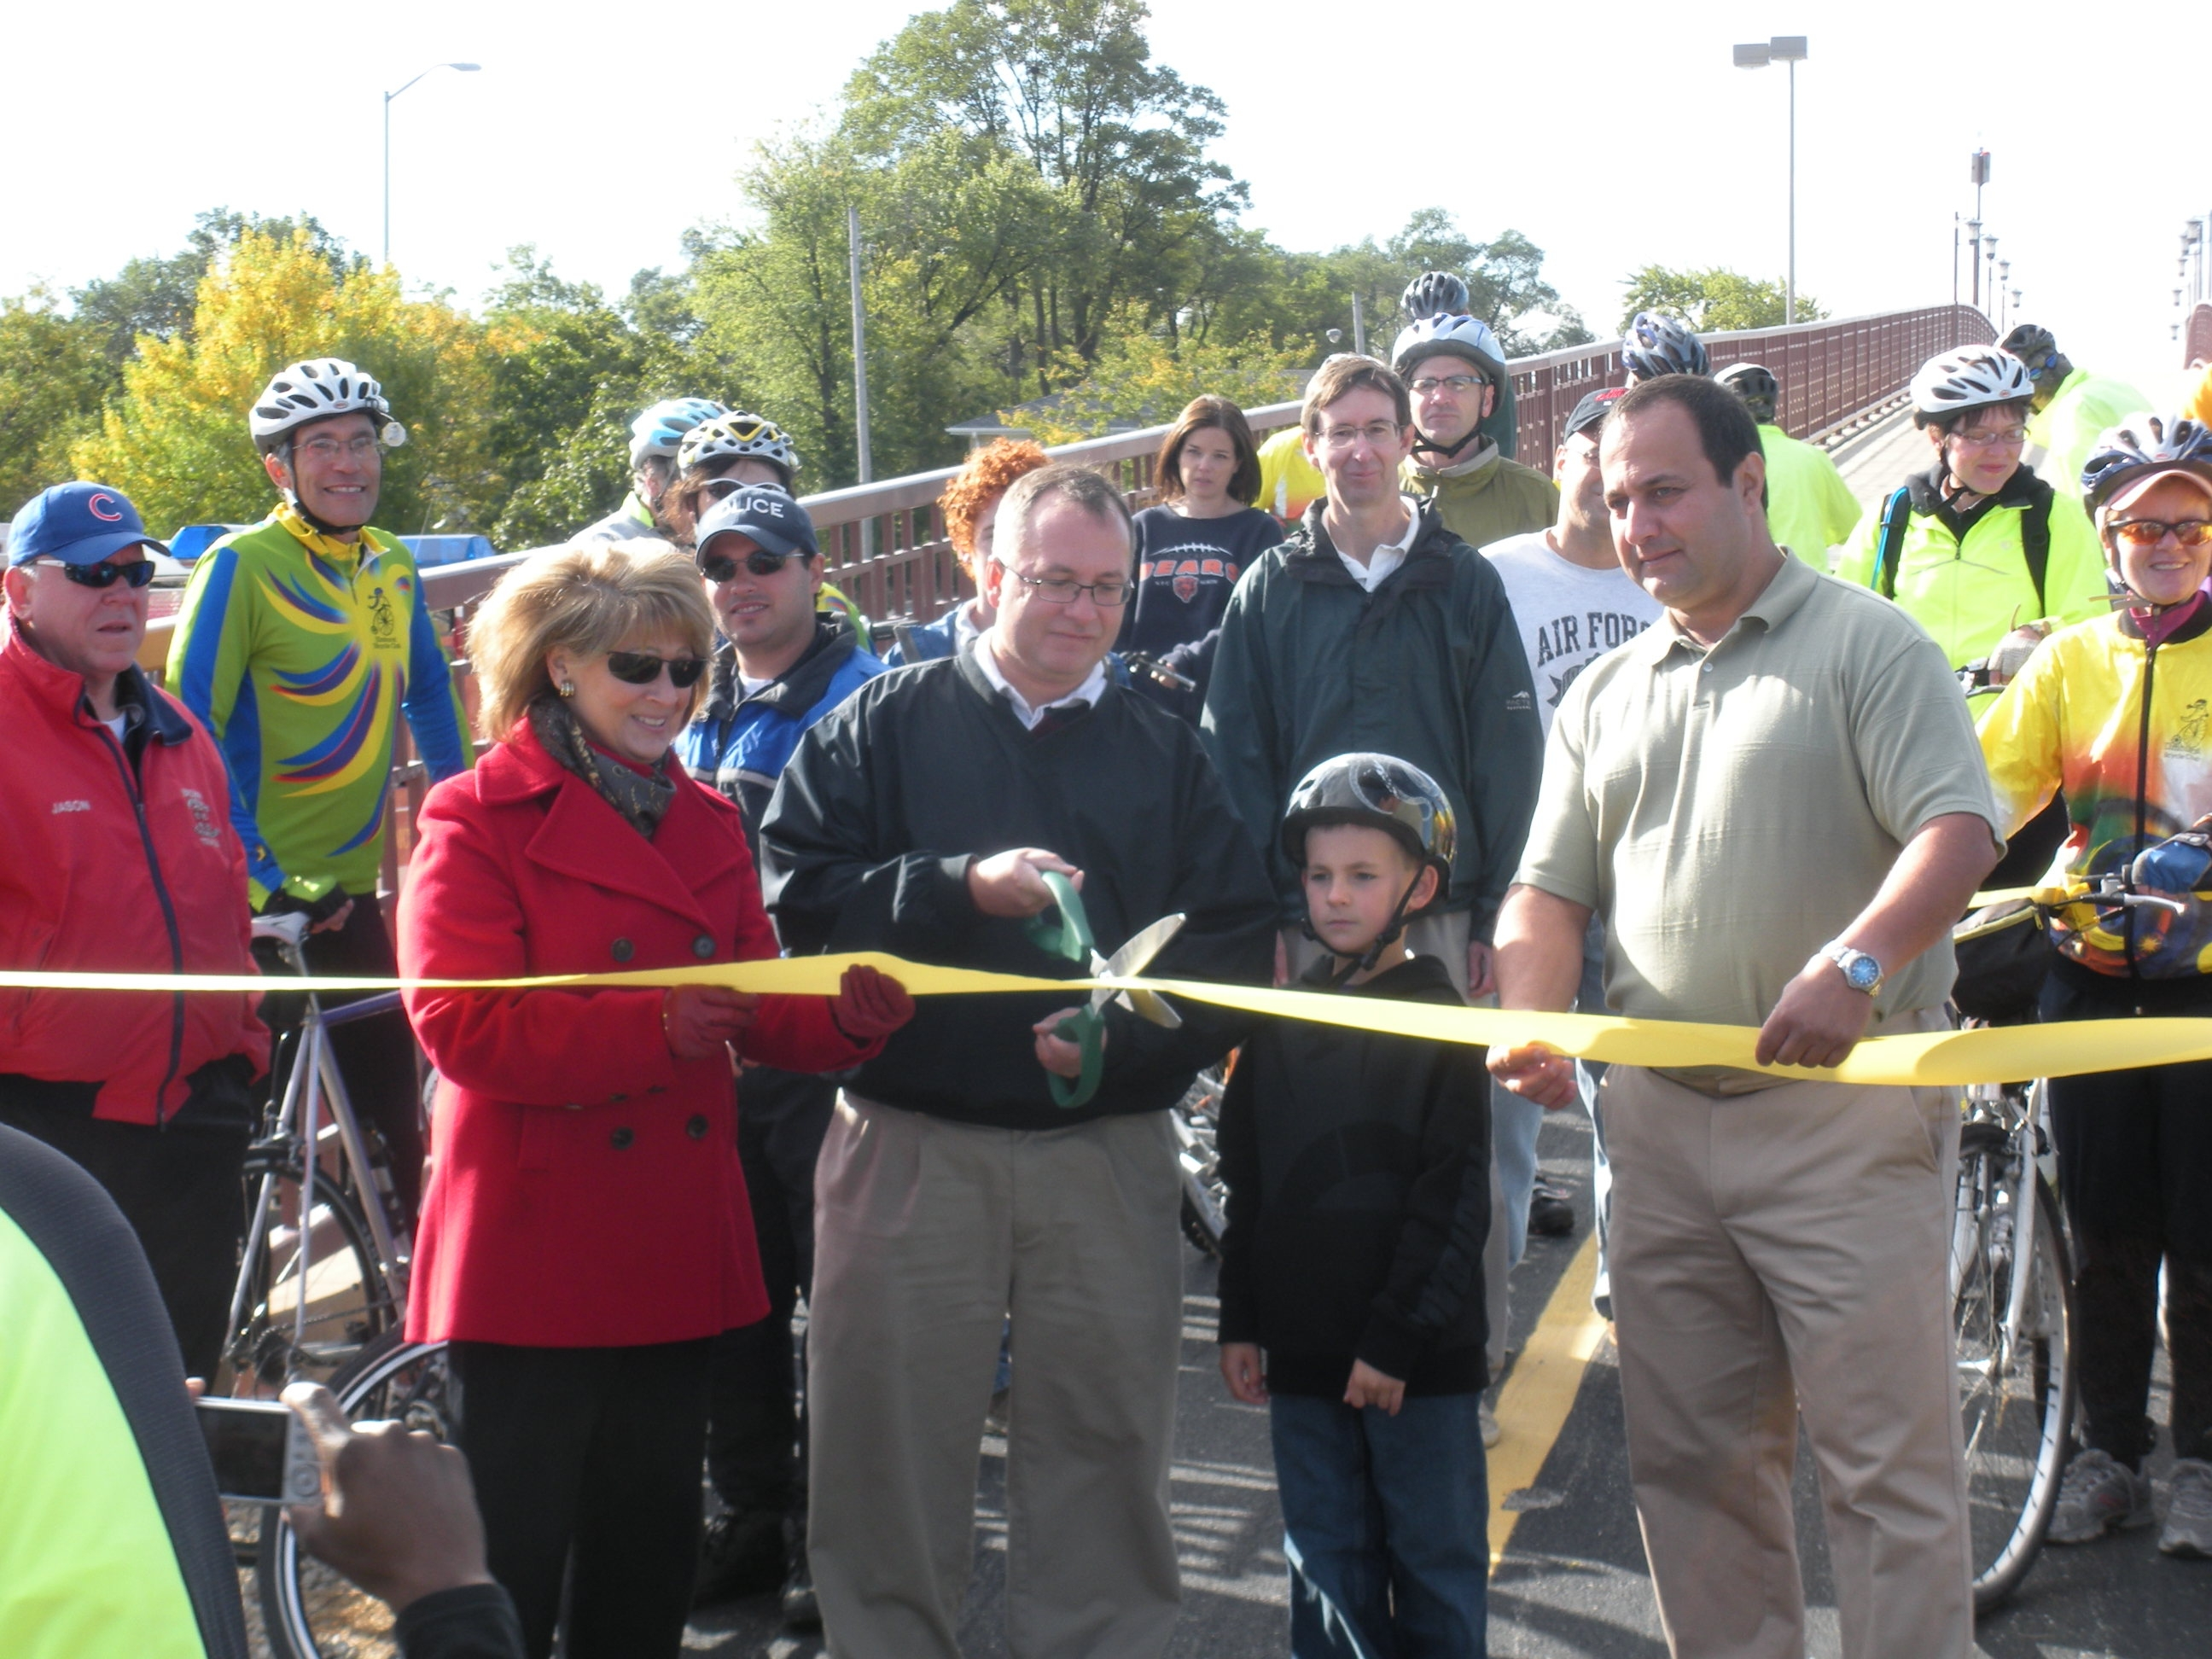 Citizens gather for the bikeway opening ceremony